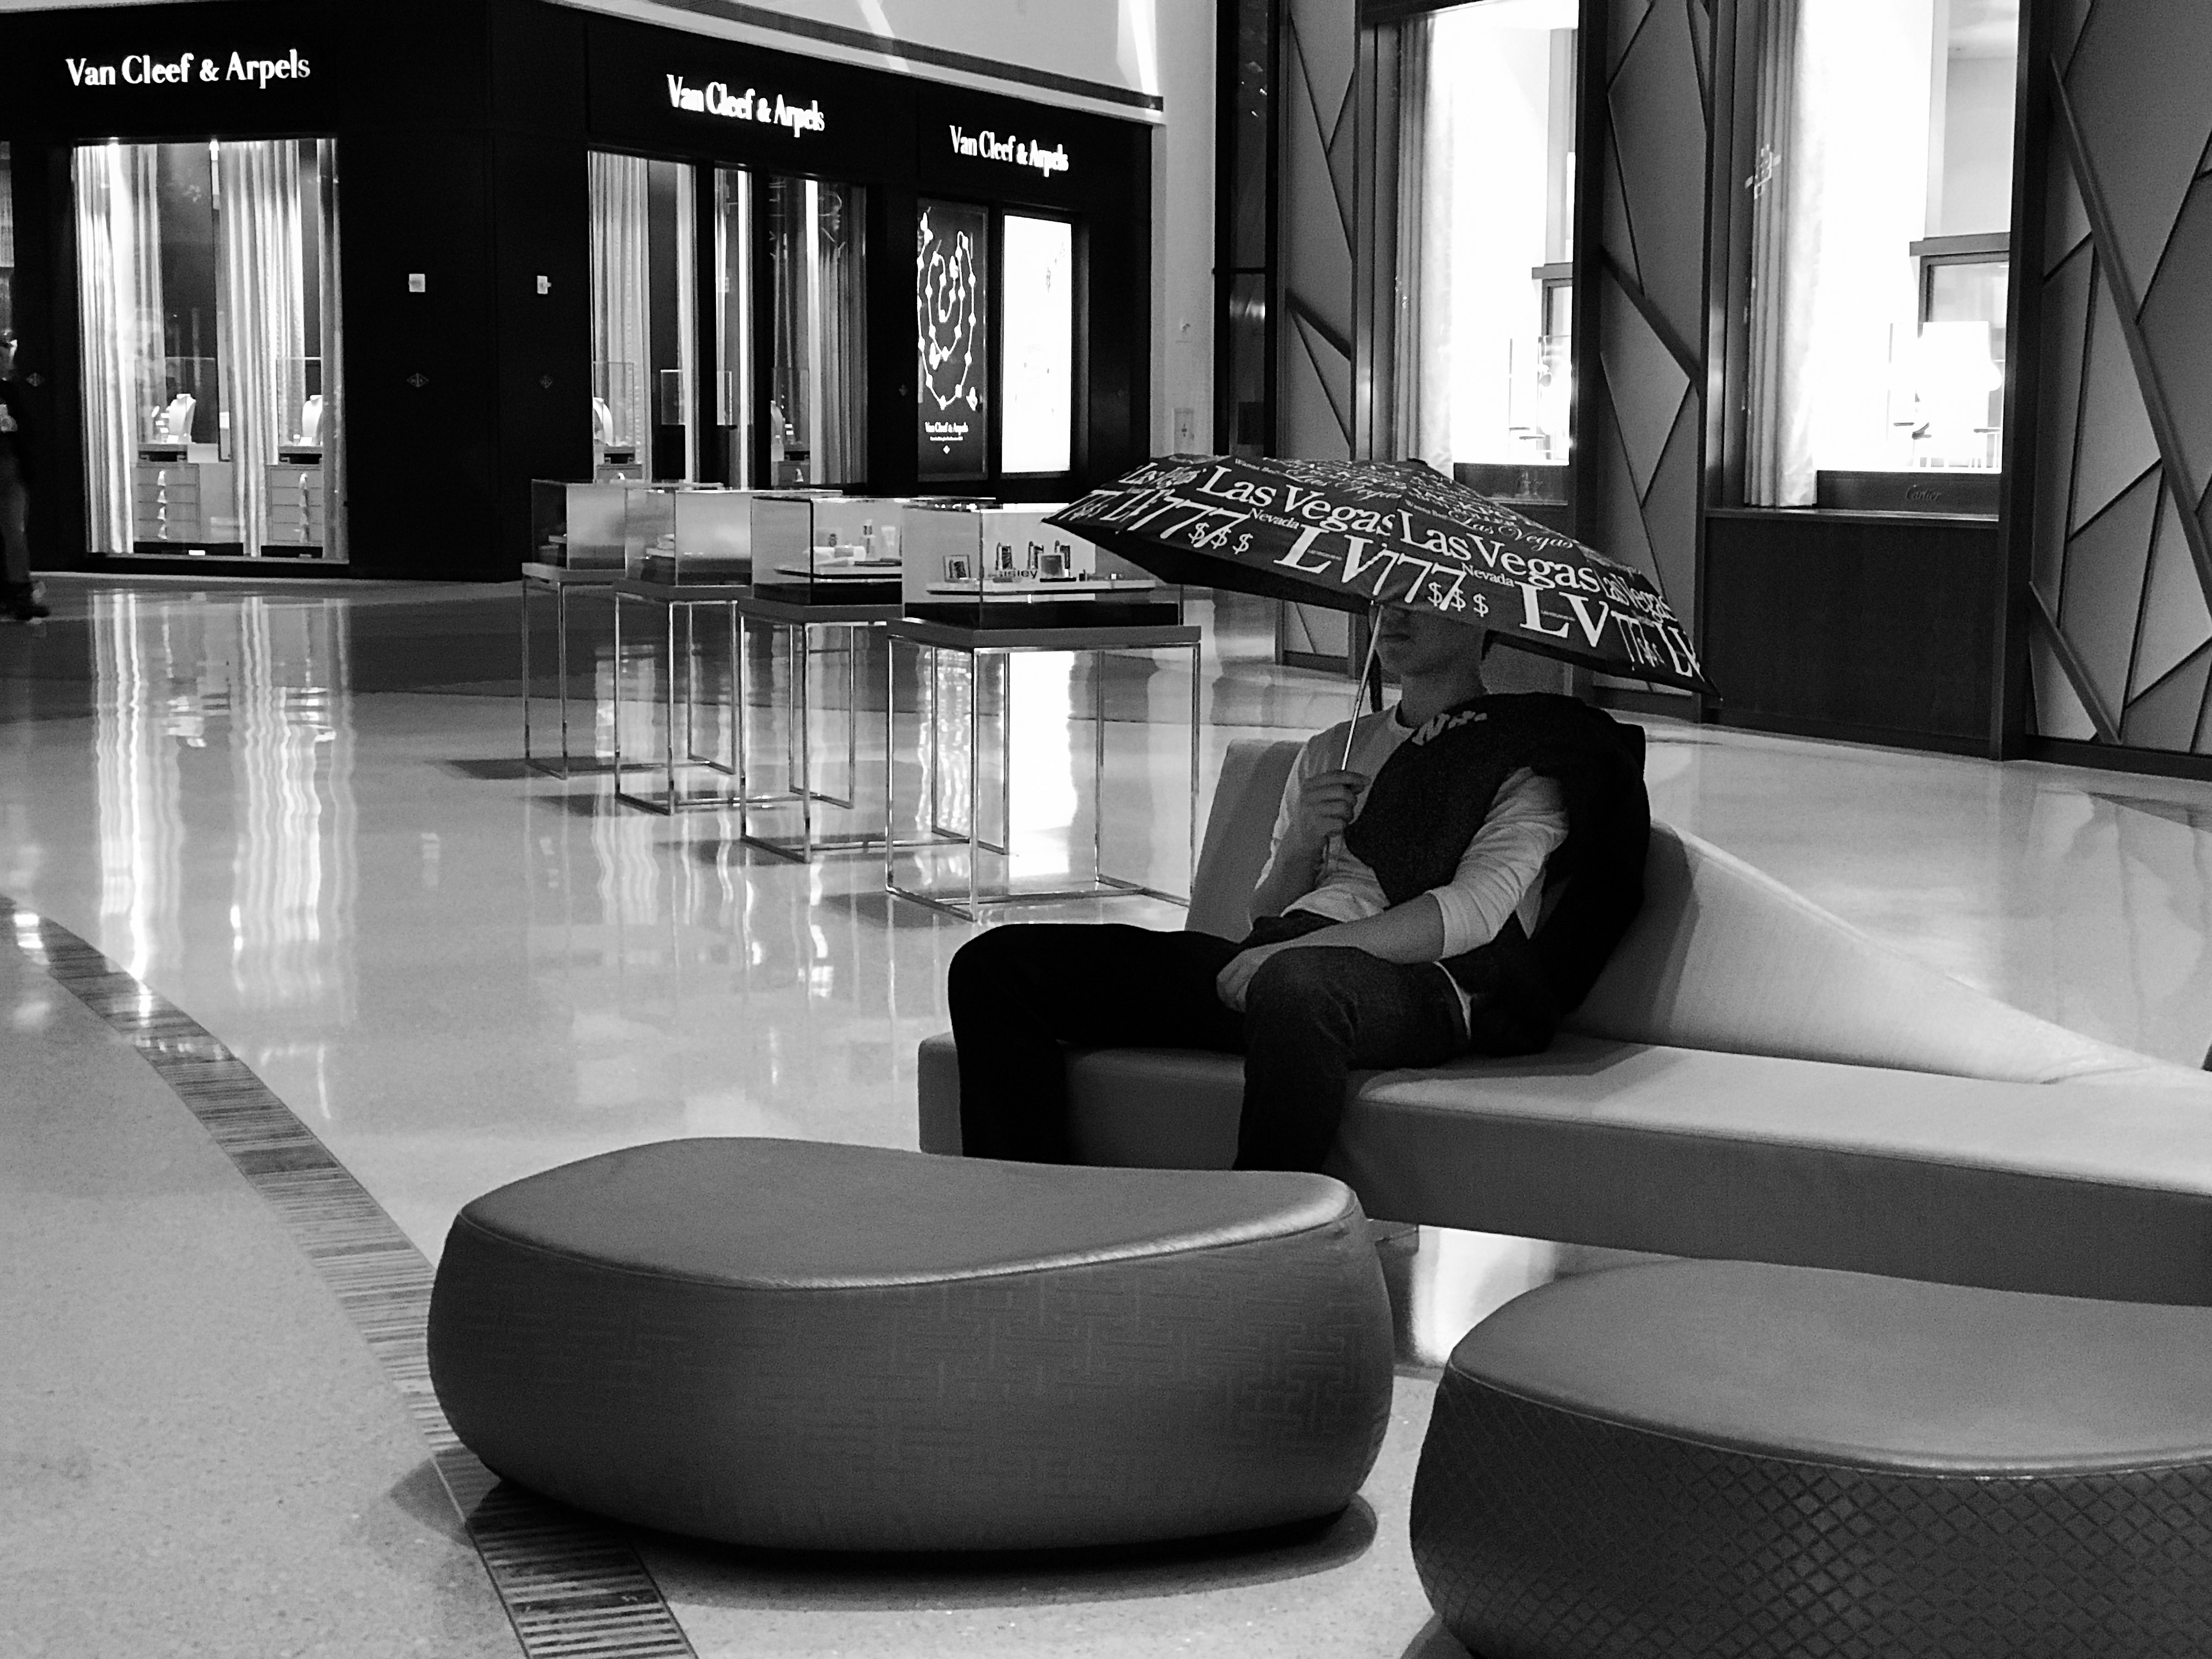 A boy sits on a couch in the middle of a large, shiny indoor mall, holding an incongruous umbrella low over his eyes.